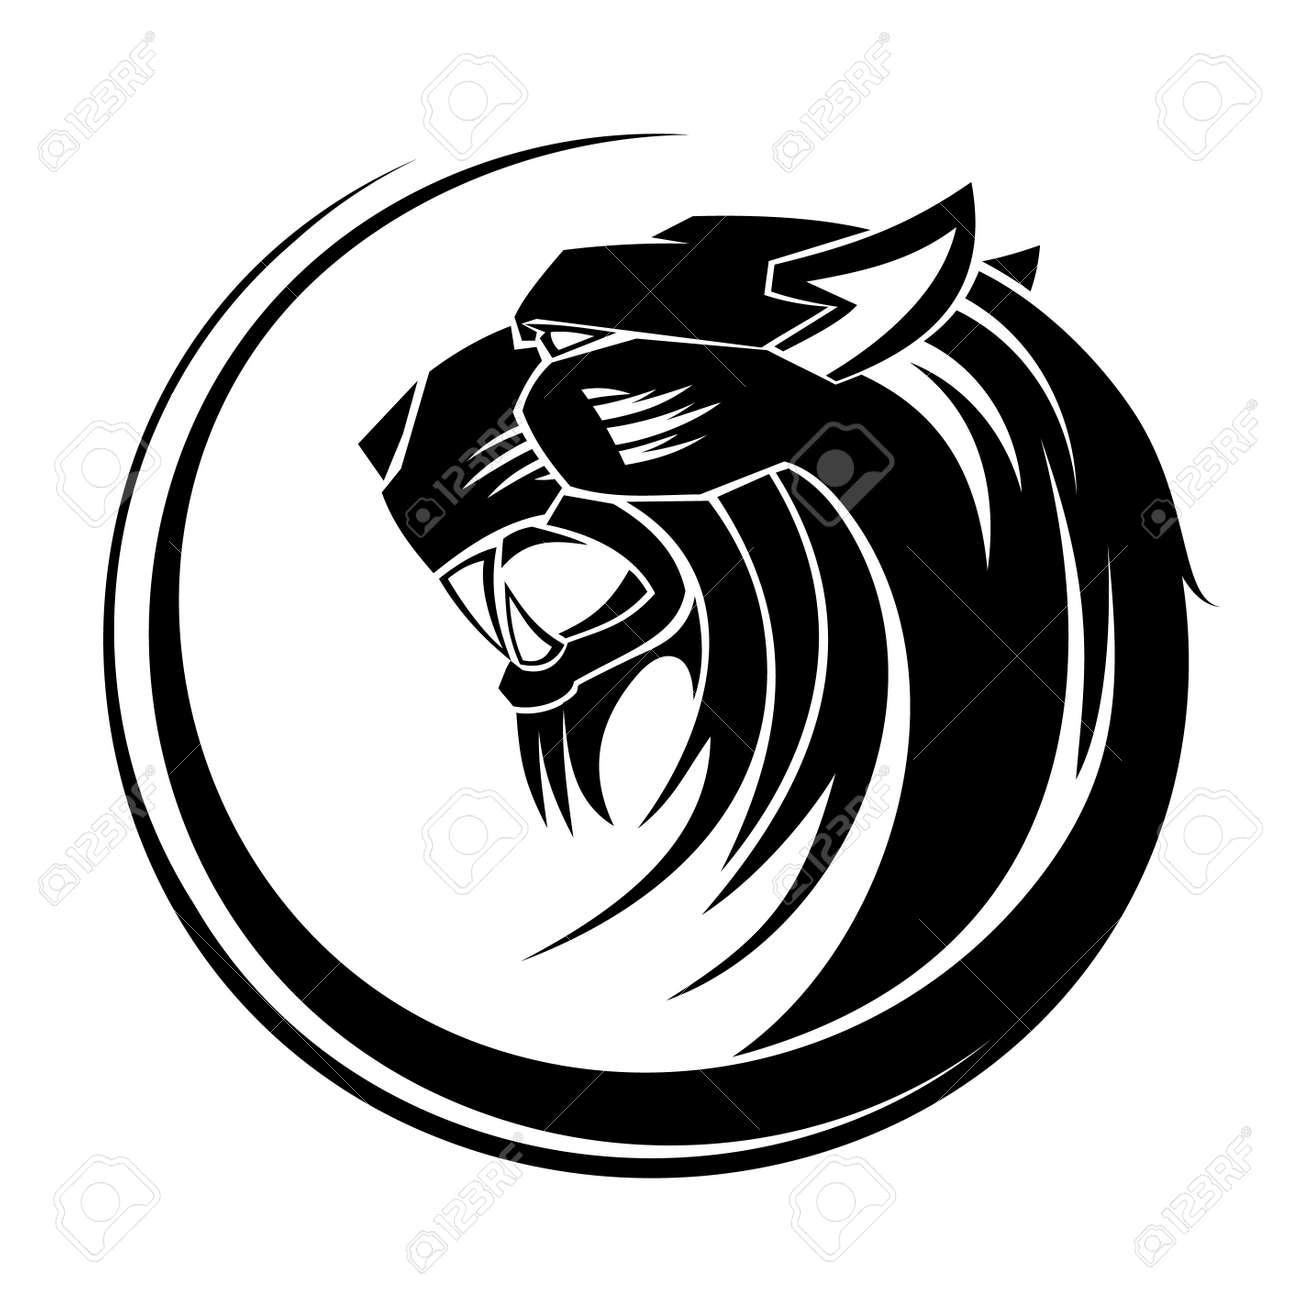 ffec11d54 Lion Circle Tribal Tattoo Art Royalty Free Cliparts, Vectors, And ...